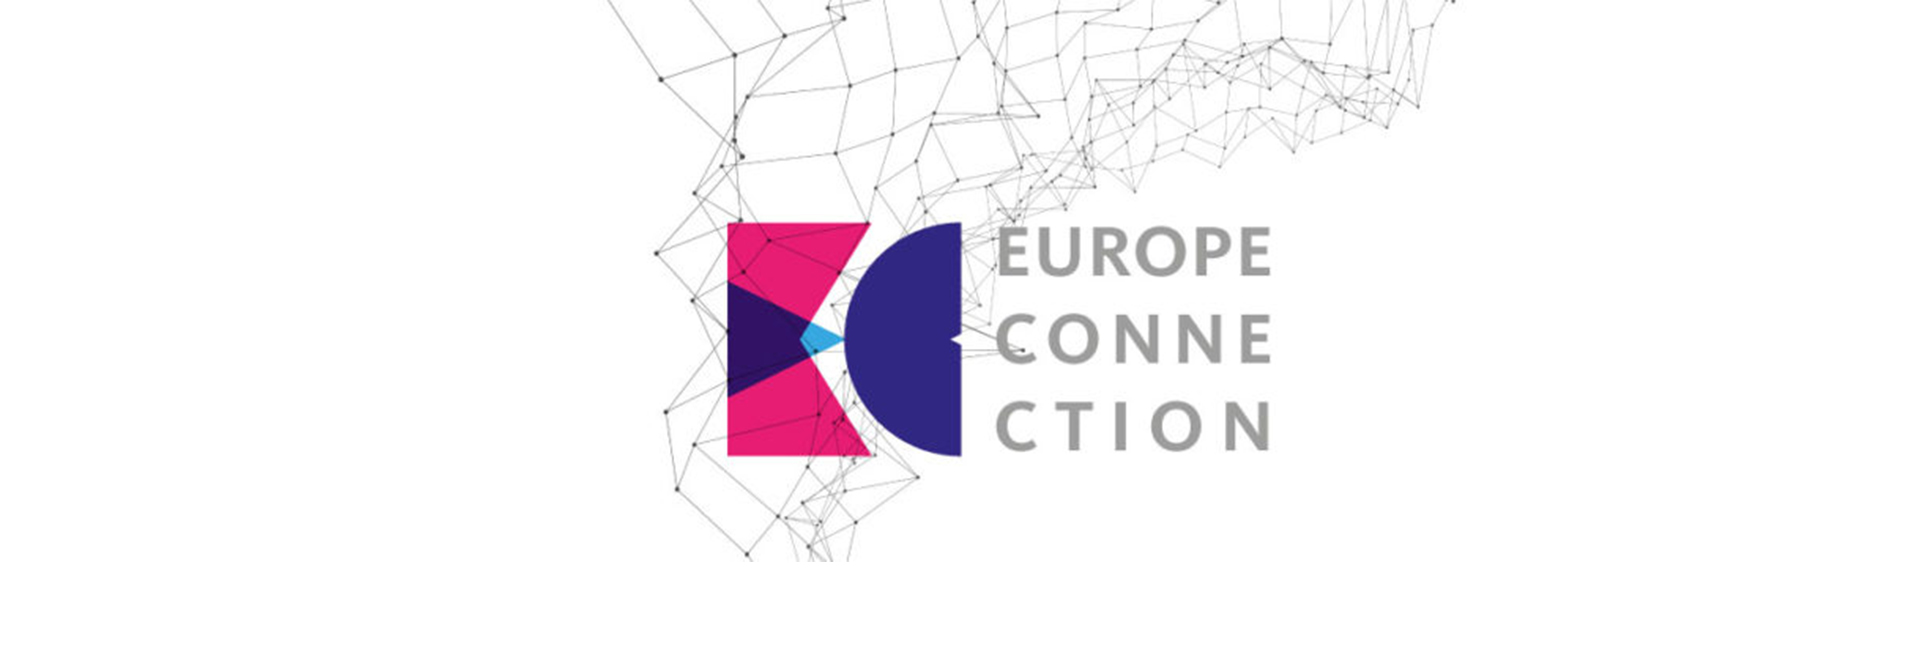 EUROPE CONNECTION